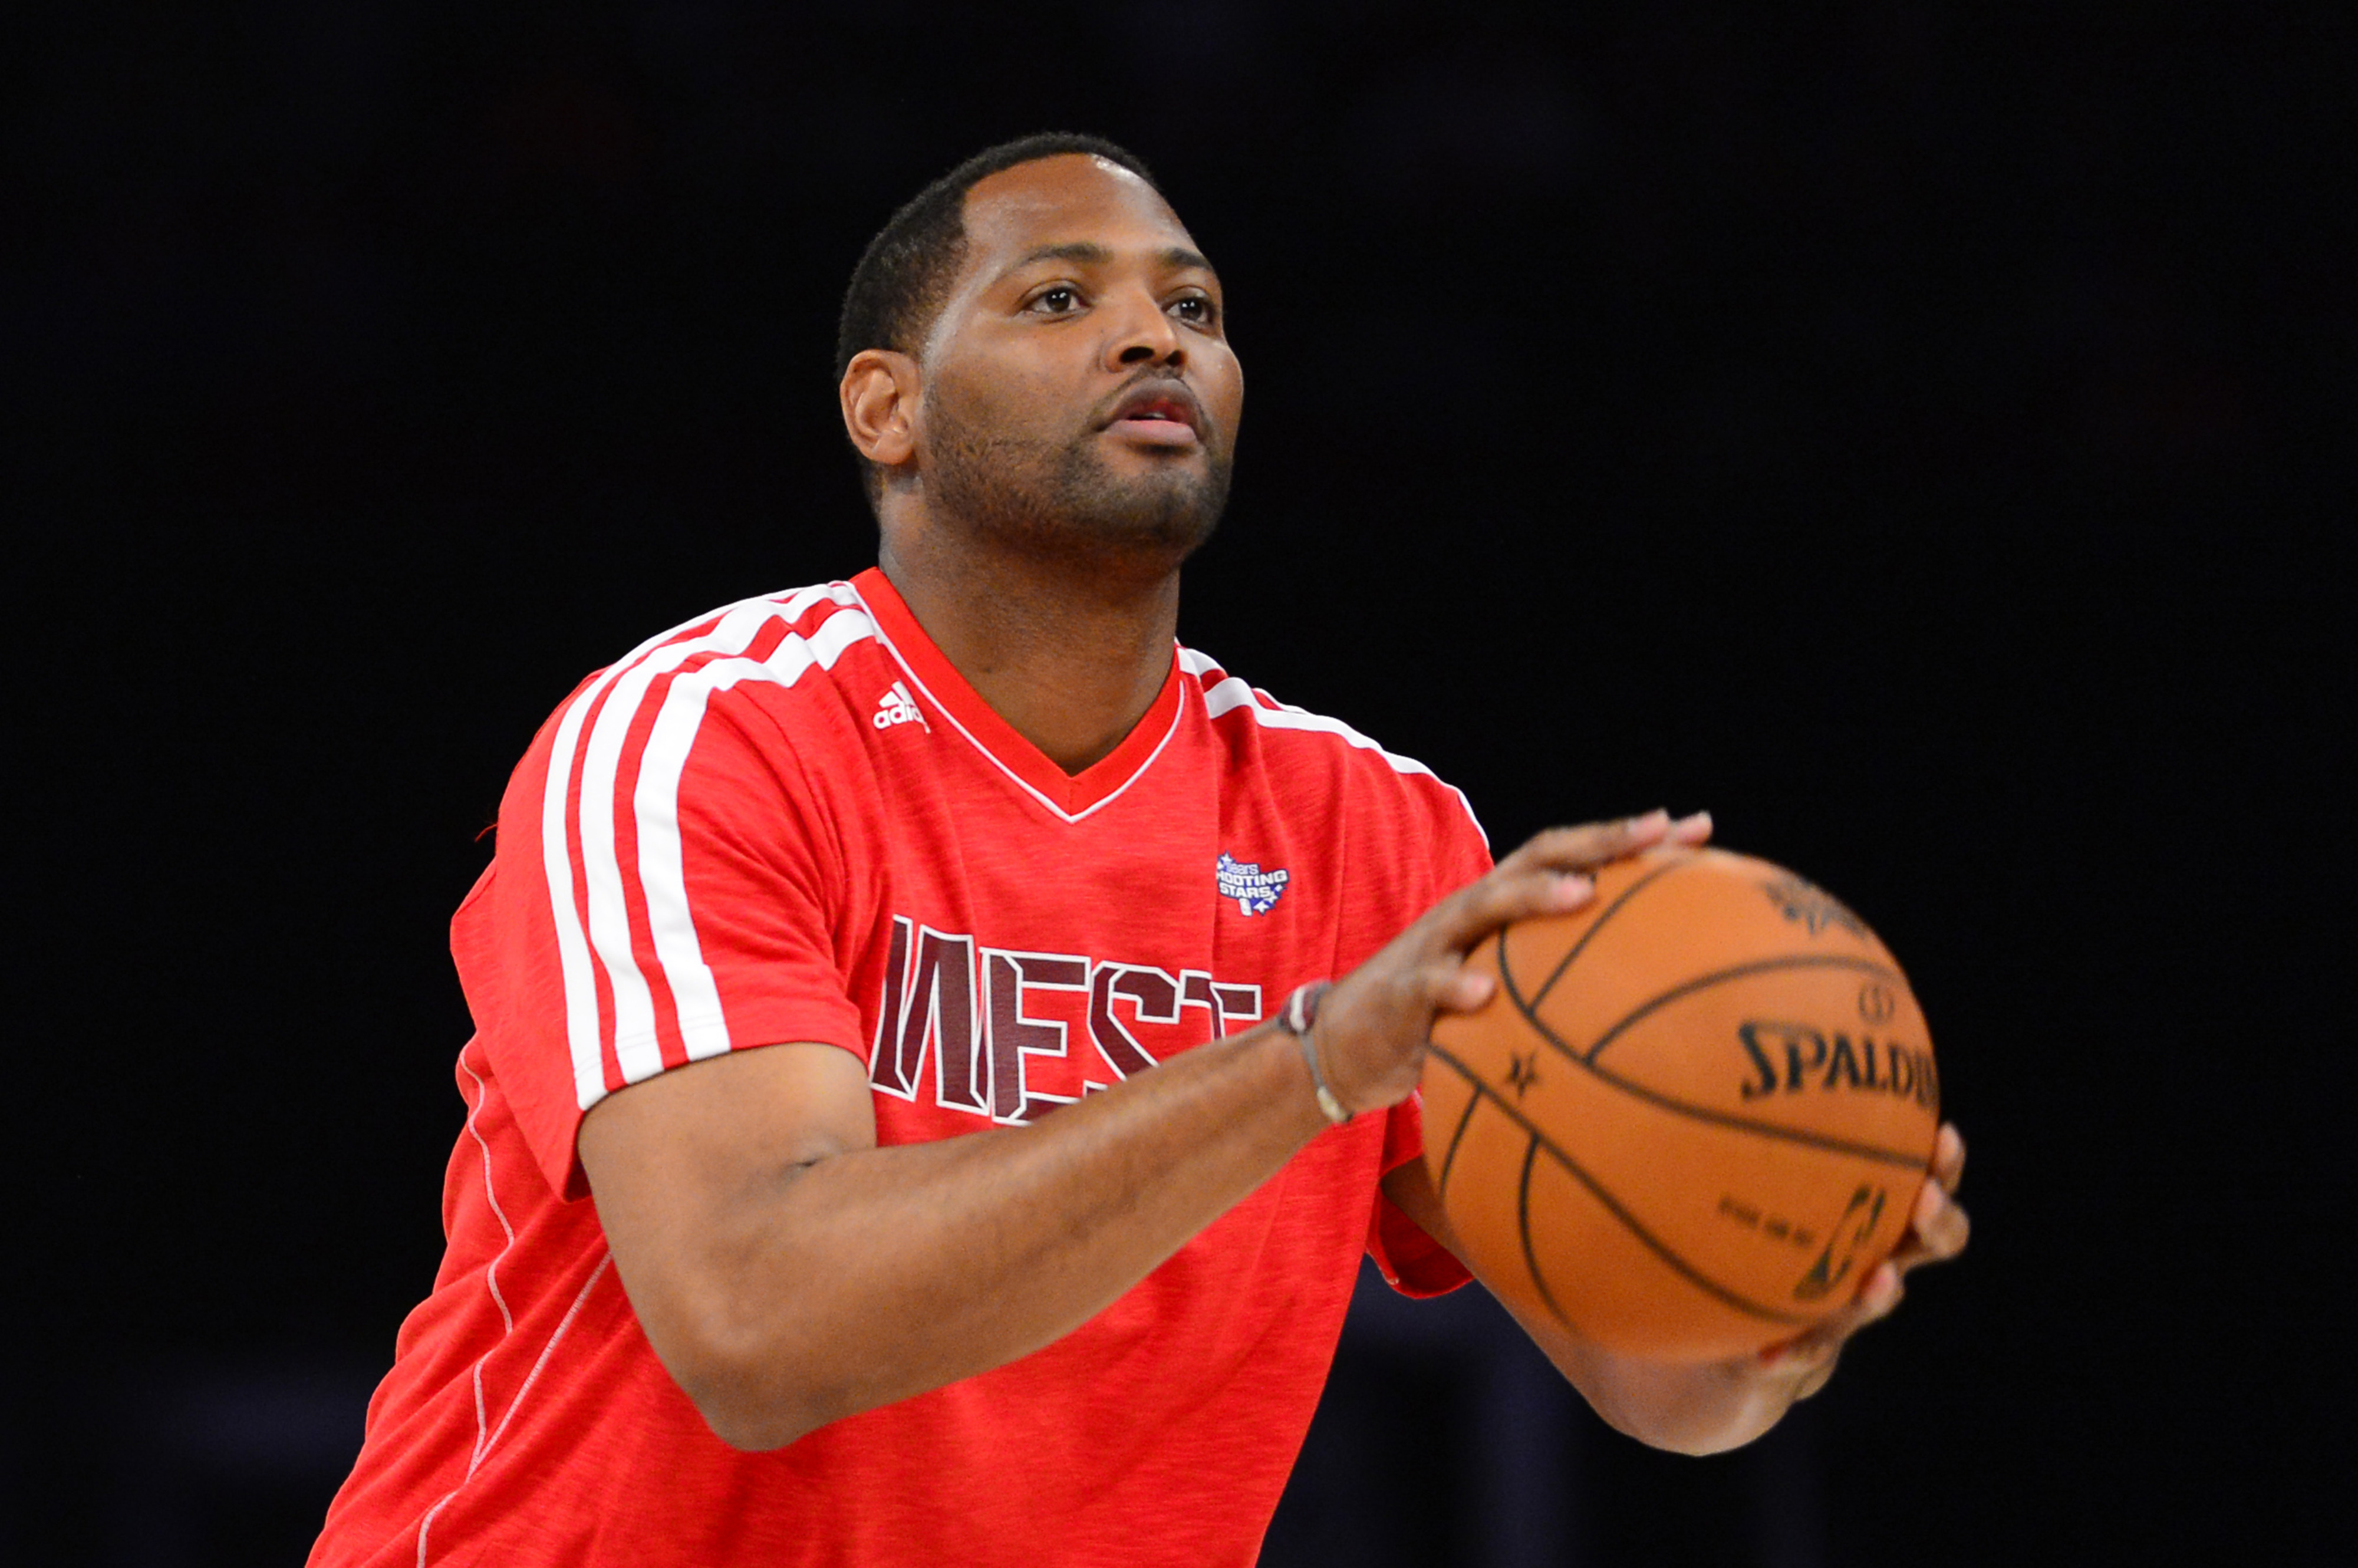 Robert Horry should be inducted into Halls of Fame, but not that one